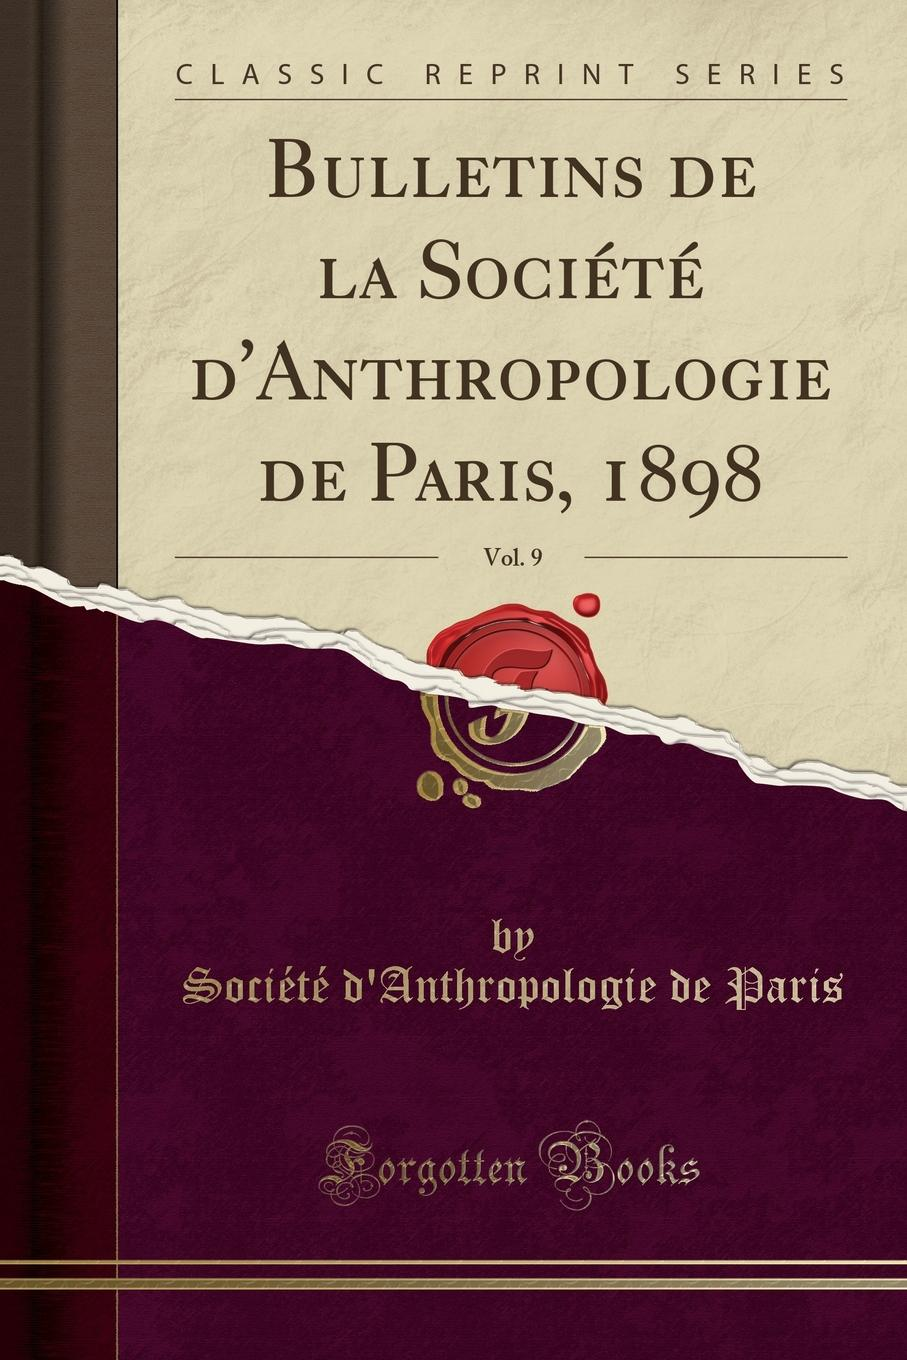 Société d'Anthropologie de Paris Bulletins de la Societe d.Anthropologie de Paris, 1898, Vol. 9 (Classic Reprint)